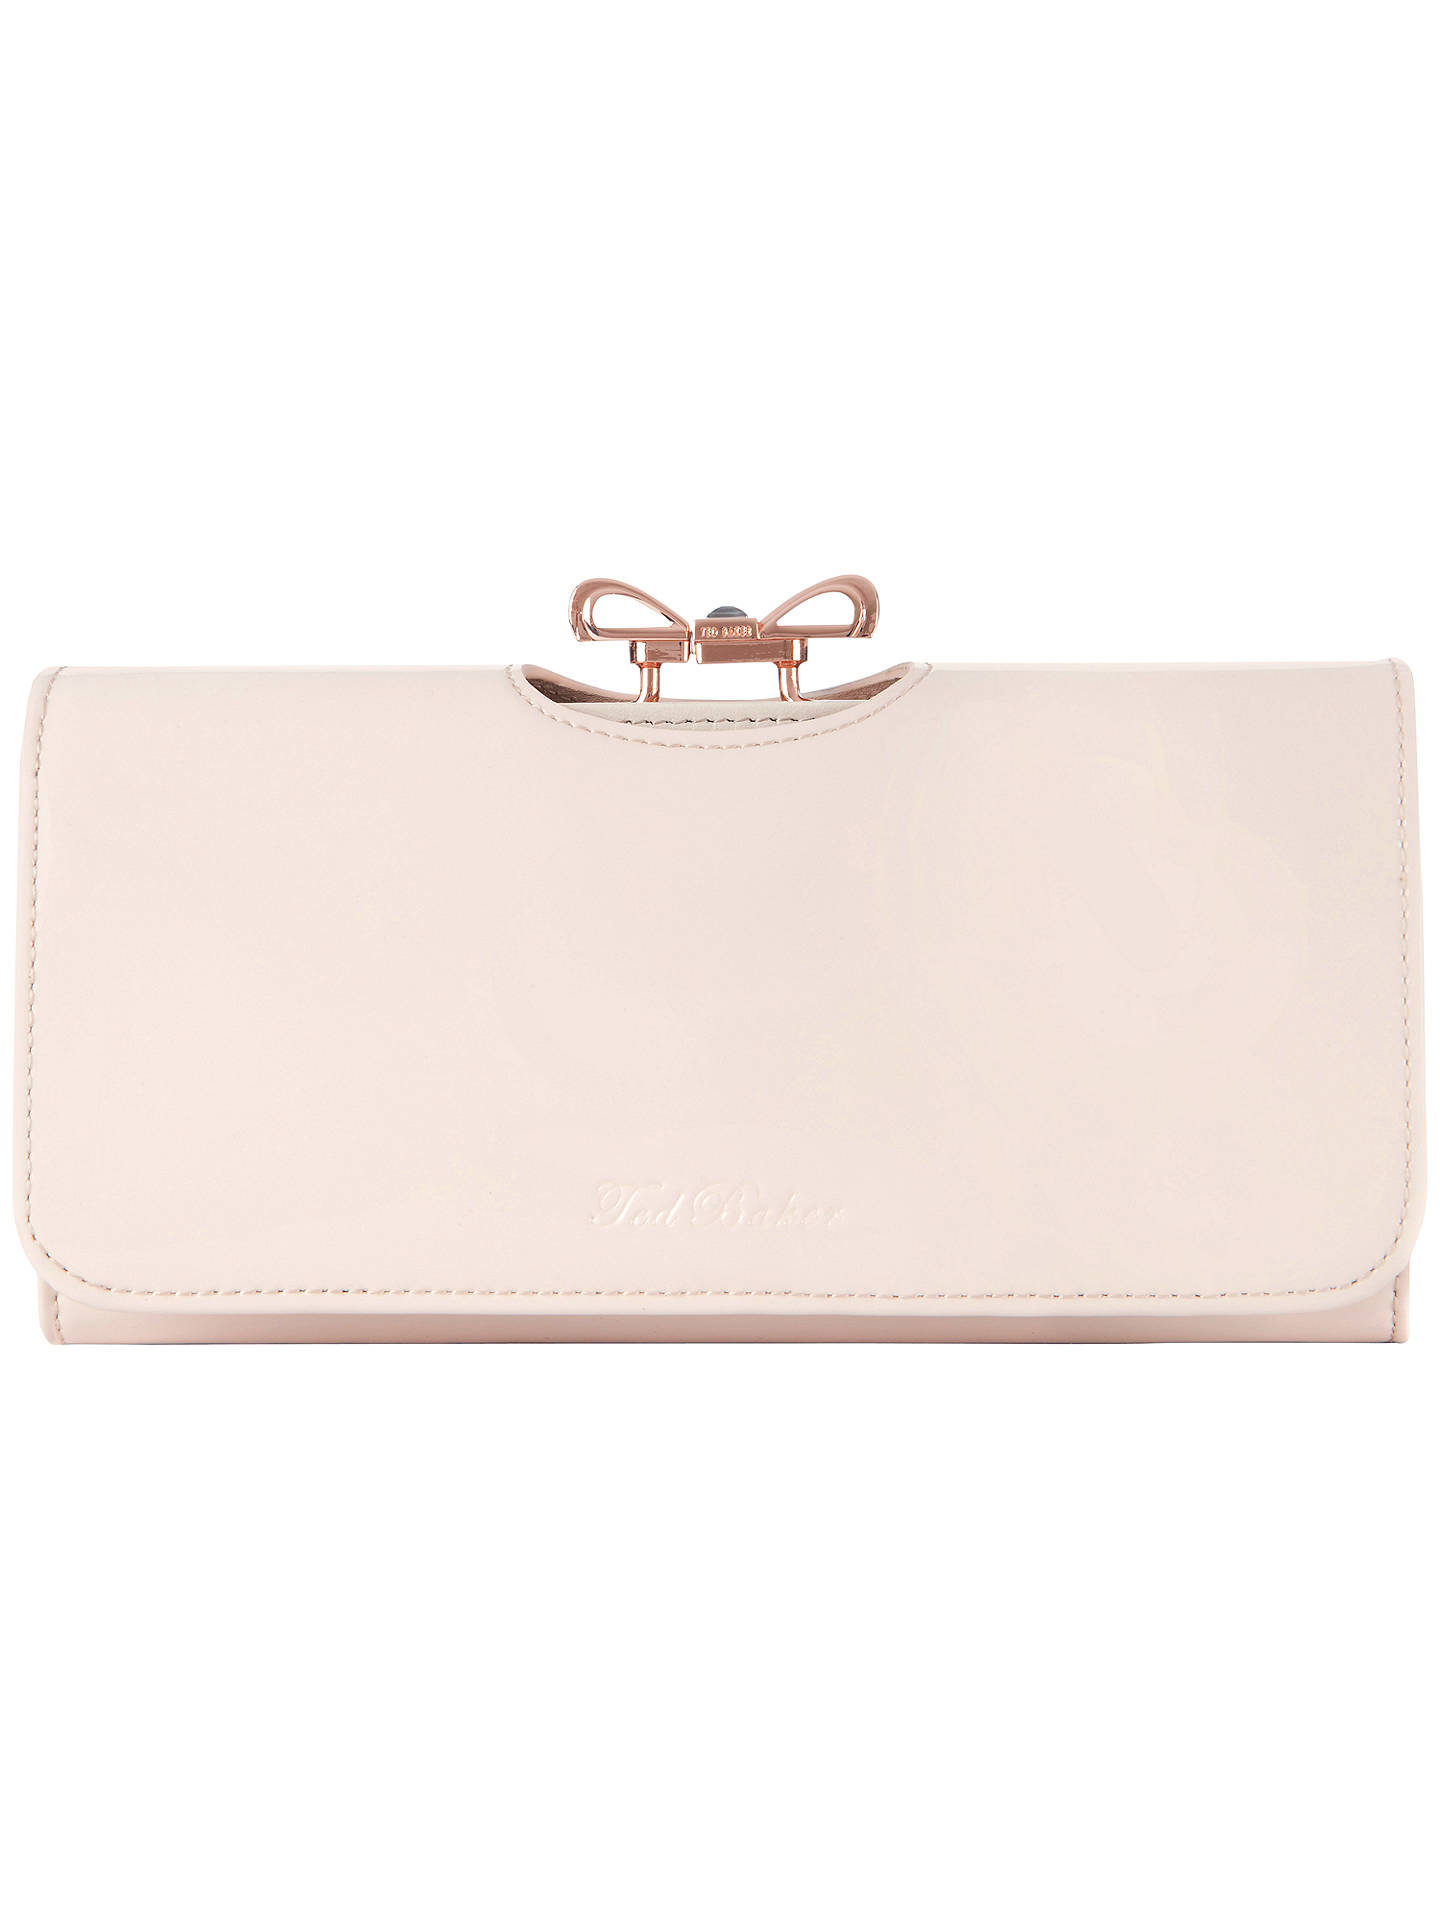 d3fde5ad3 Ted Baker Lindar Bow Bobble Leather Purse at John Lewis   Partners